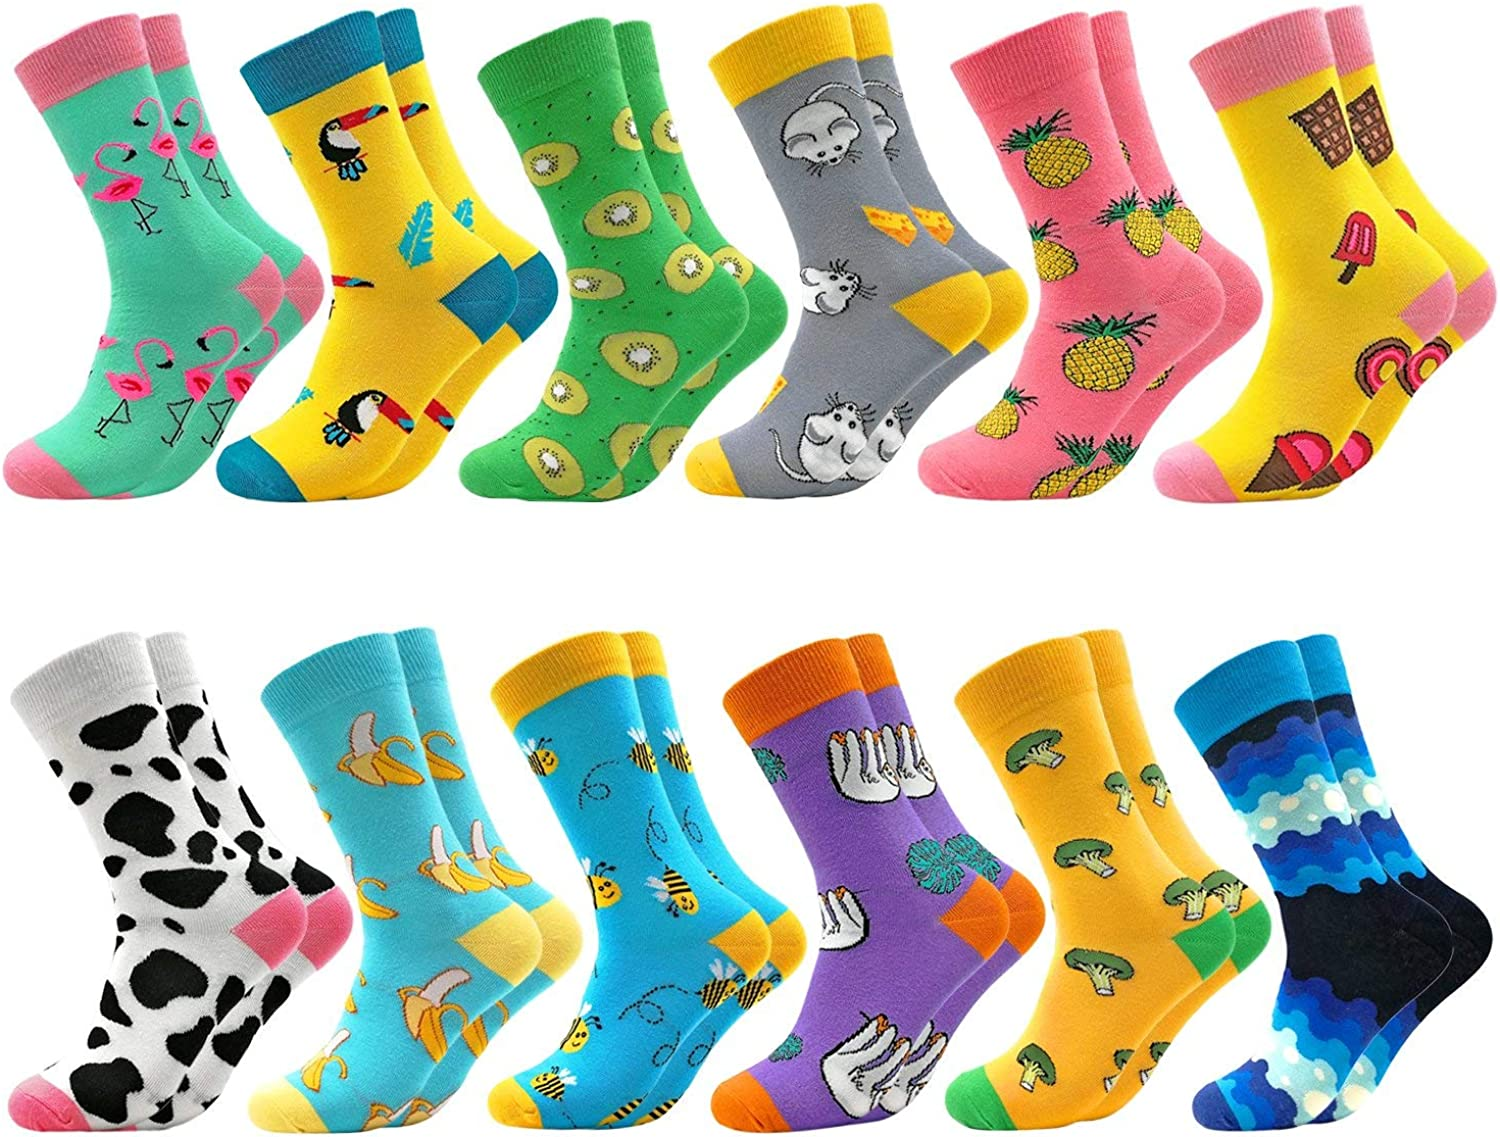 Fun Colorful Socks Combed Cotton Stockings Mid Calf Art Patterned Funky Happy Sock Packs, 12 Pairs1204, Free Size US 6-11: Clothing